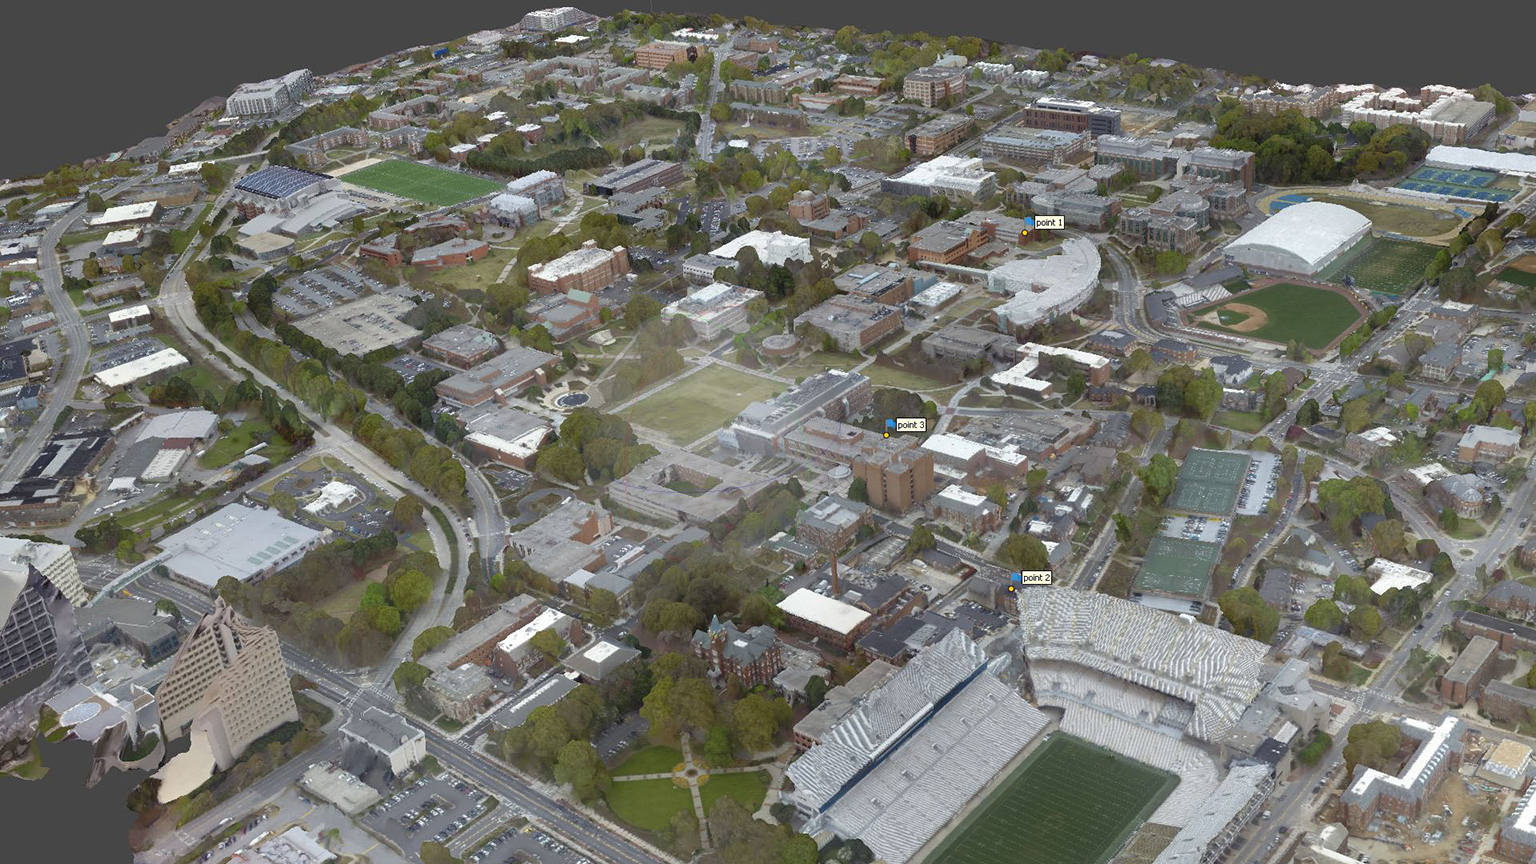 photogrammetry of the Georgia Tech Campus